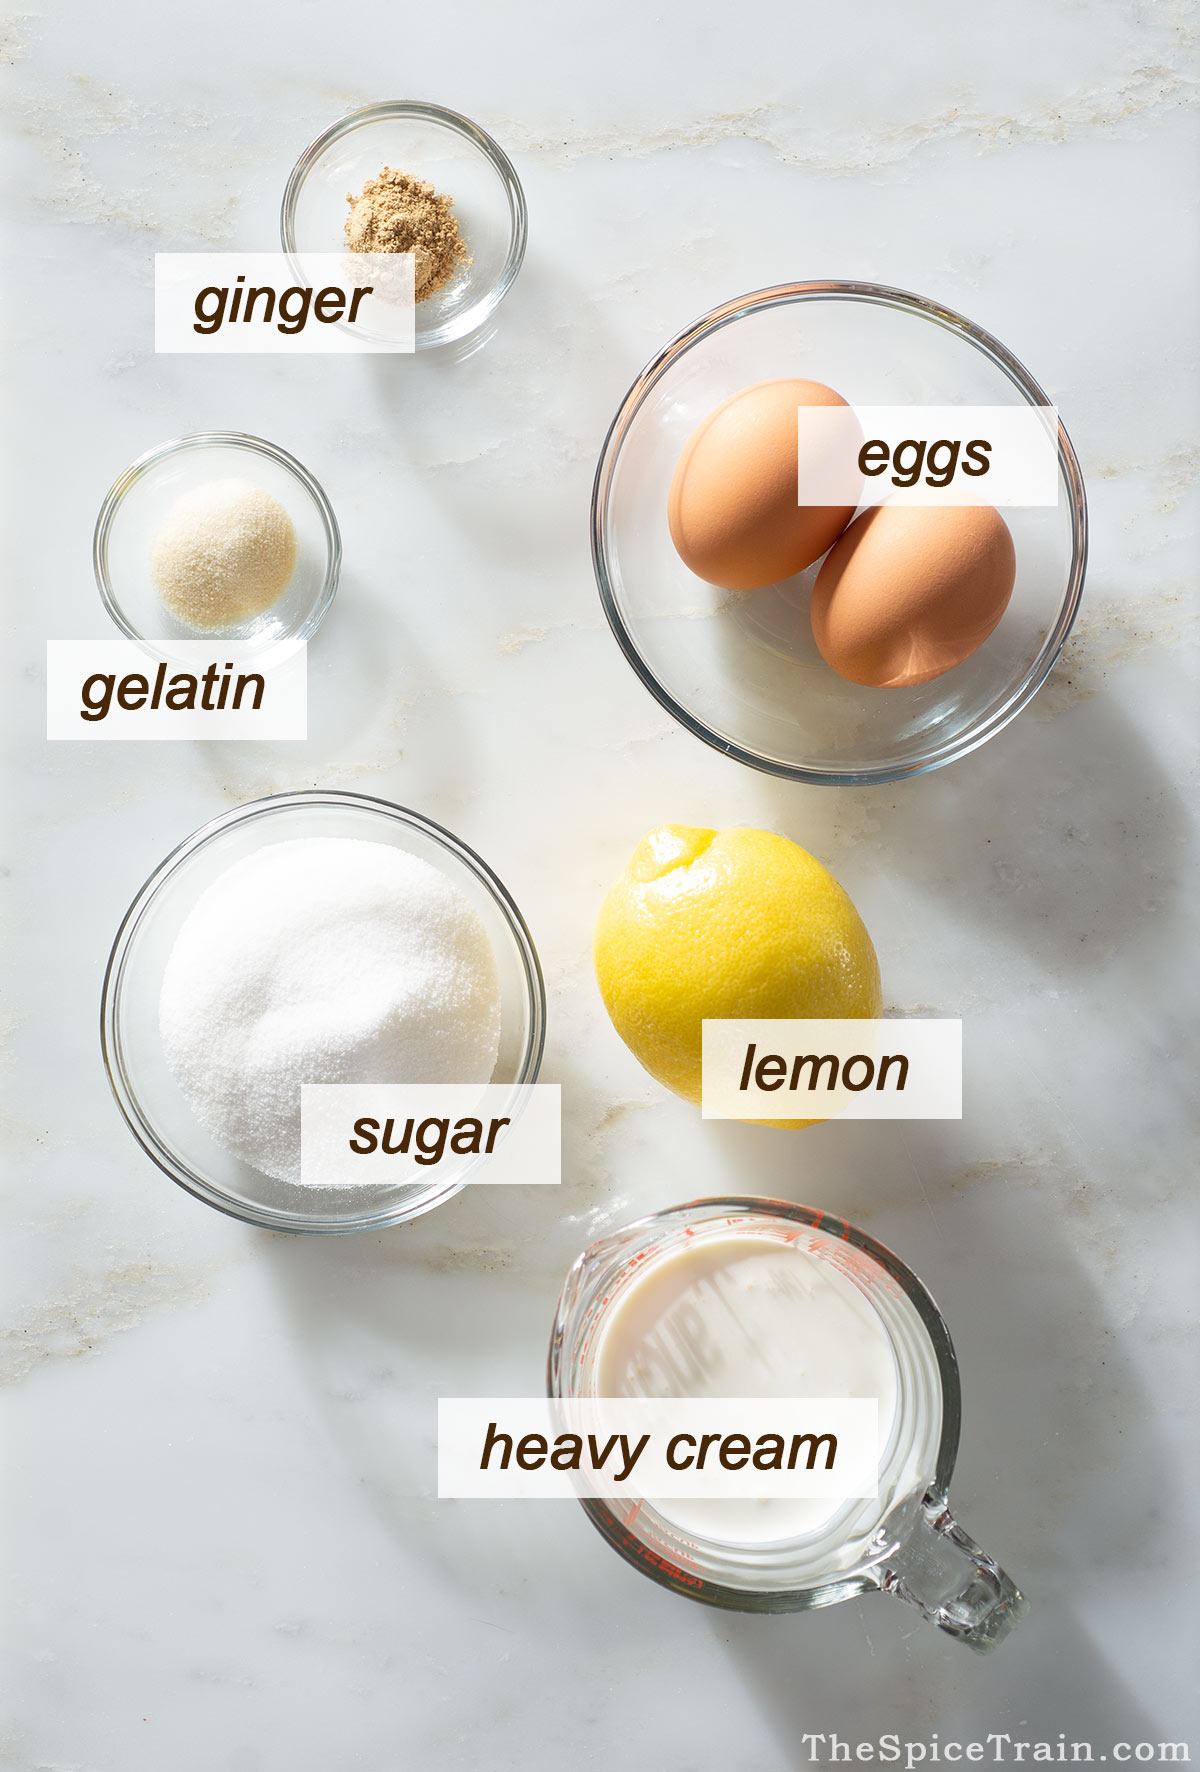 All ingredients needed to make lemon ginger mousse.